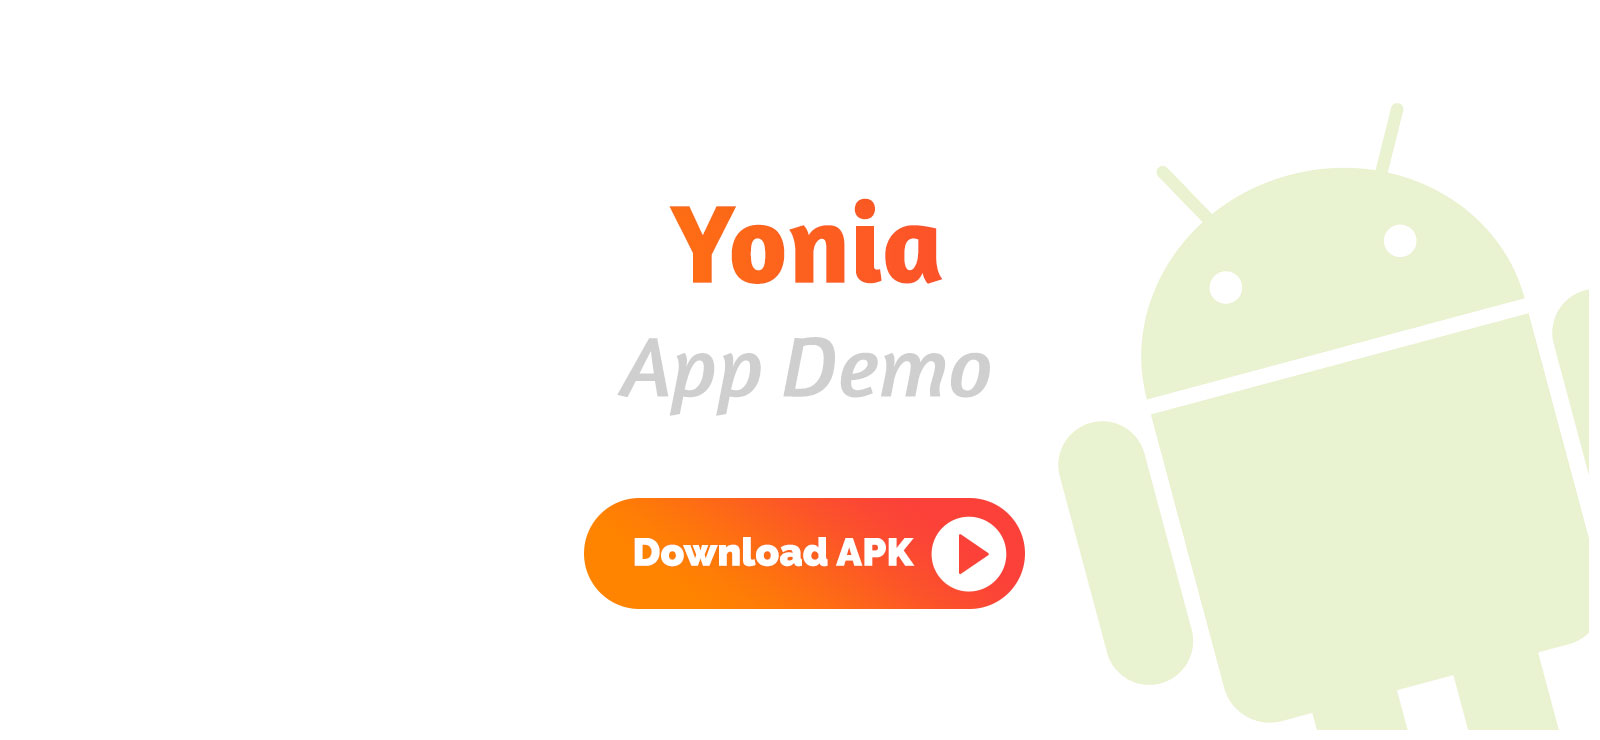 Yonia - Complete React Native Recipes App + Admin Panel - 3